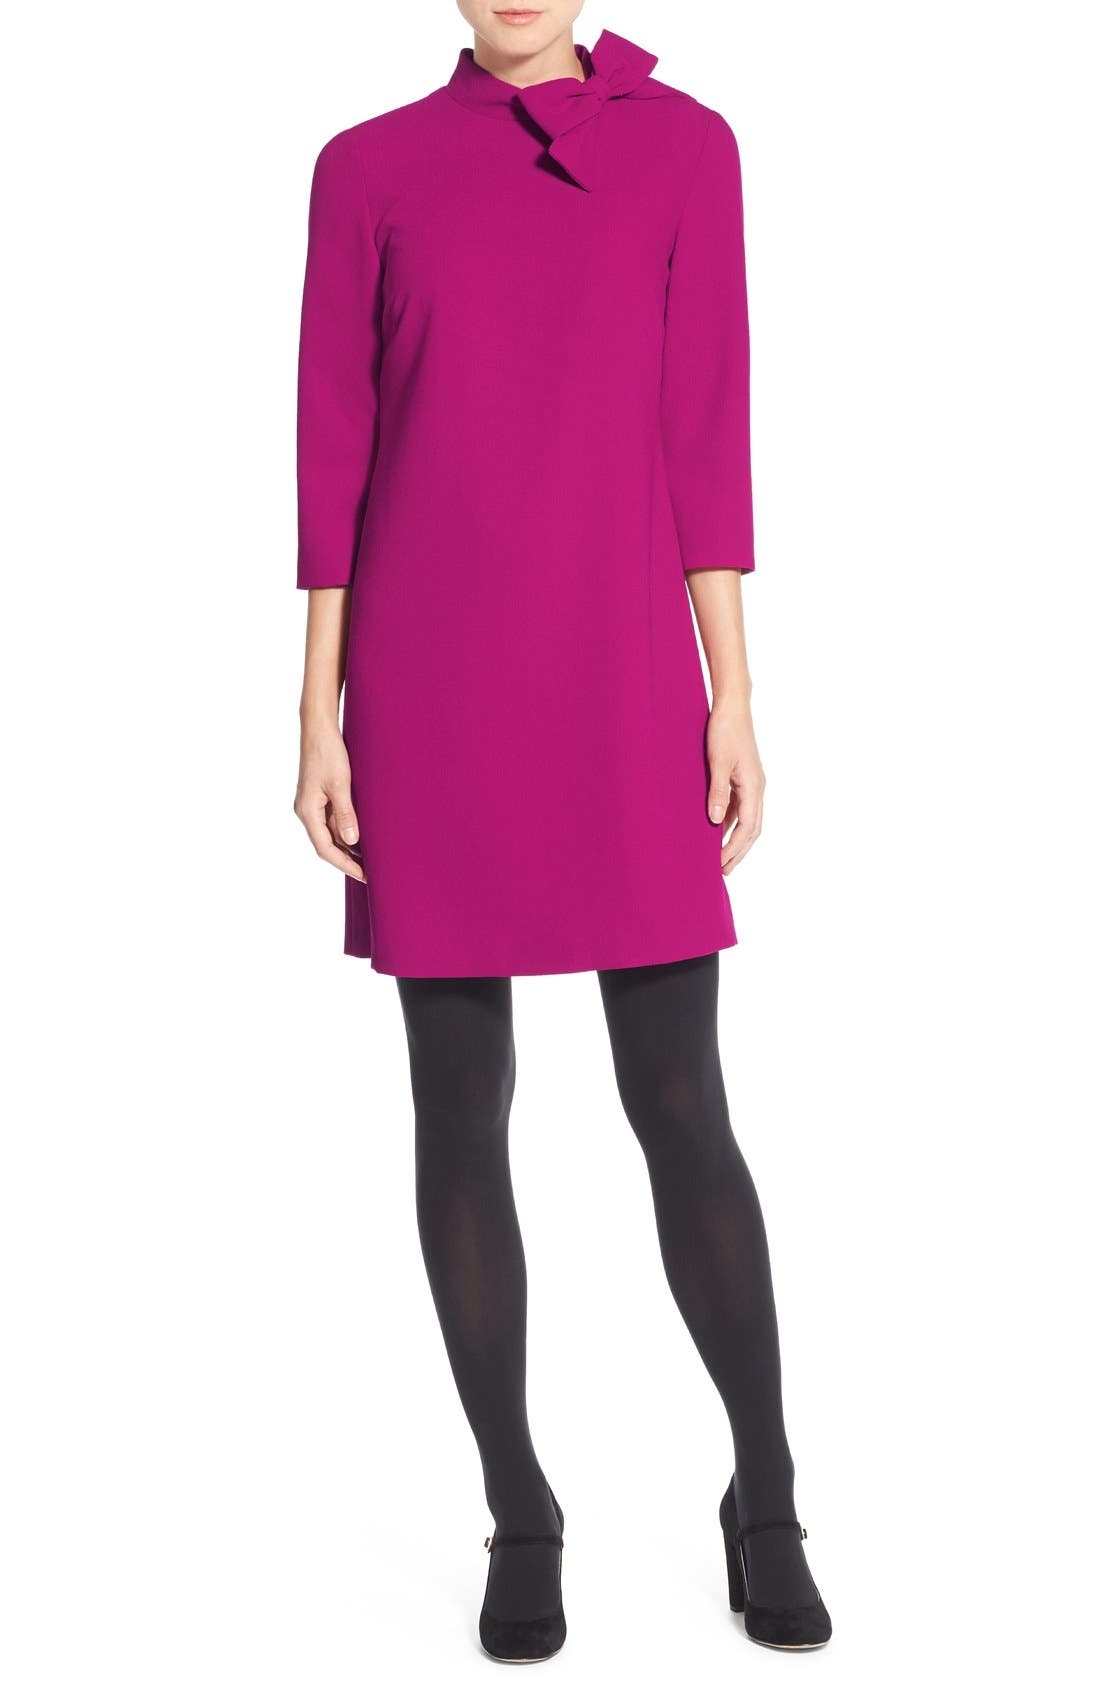 Bow Crepe A-Line Dress,                             Alternate thumbnail 13, color,                             PINK